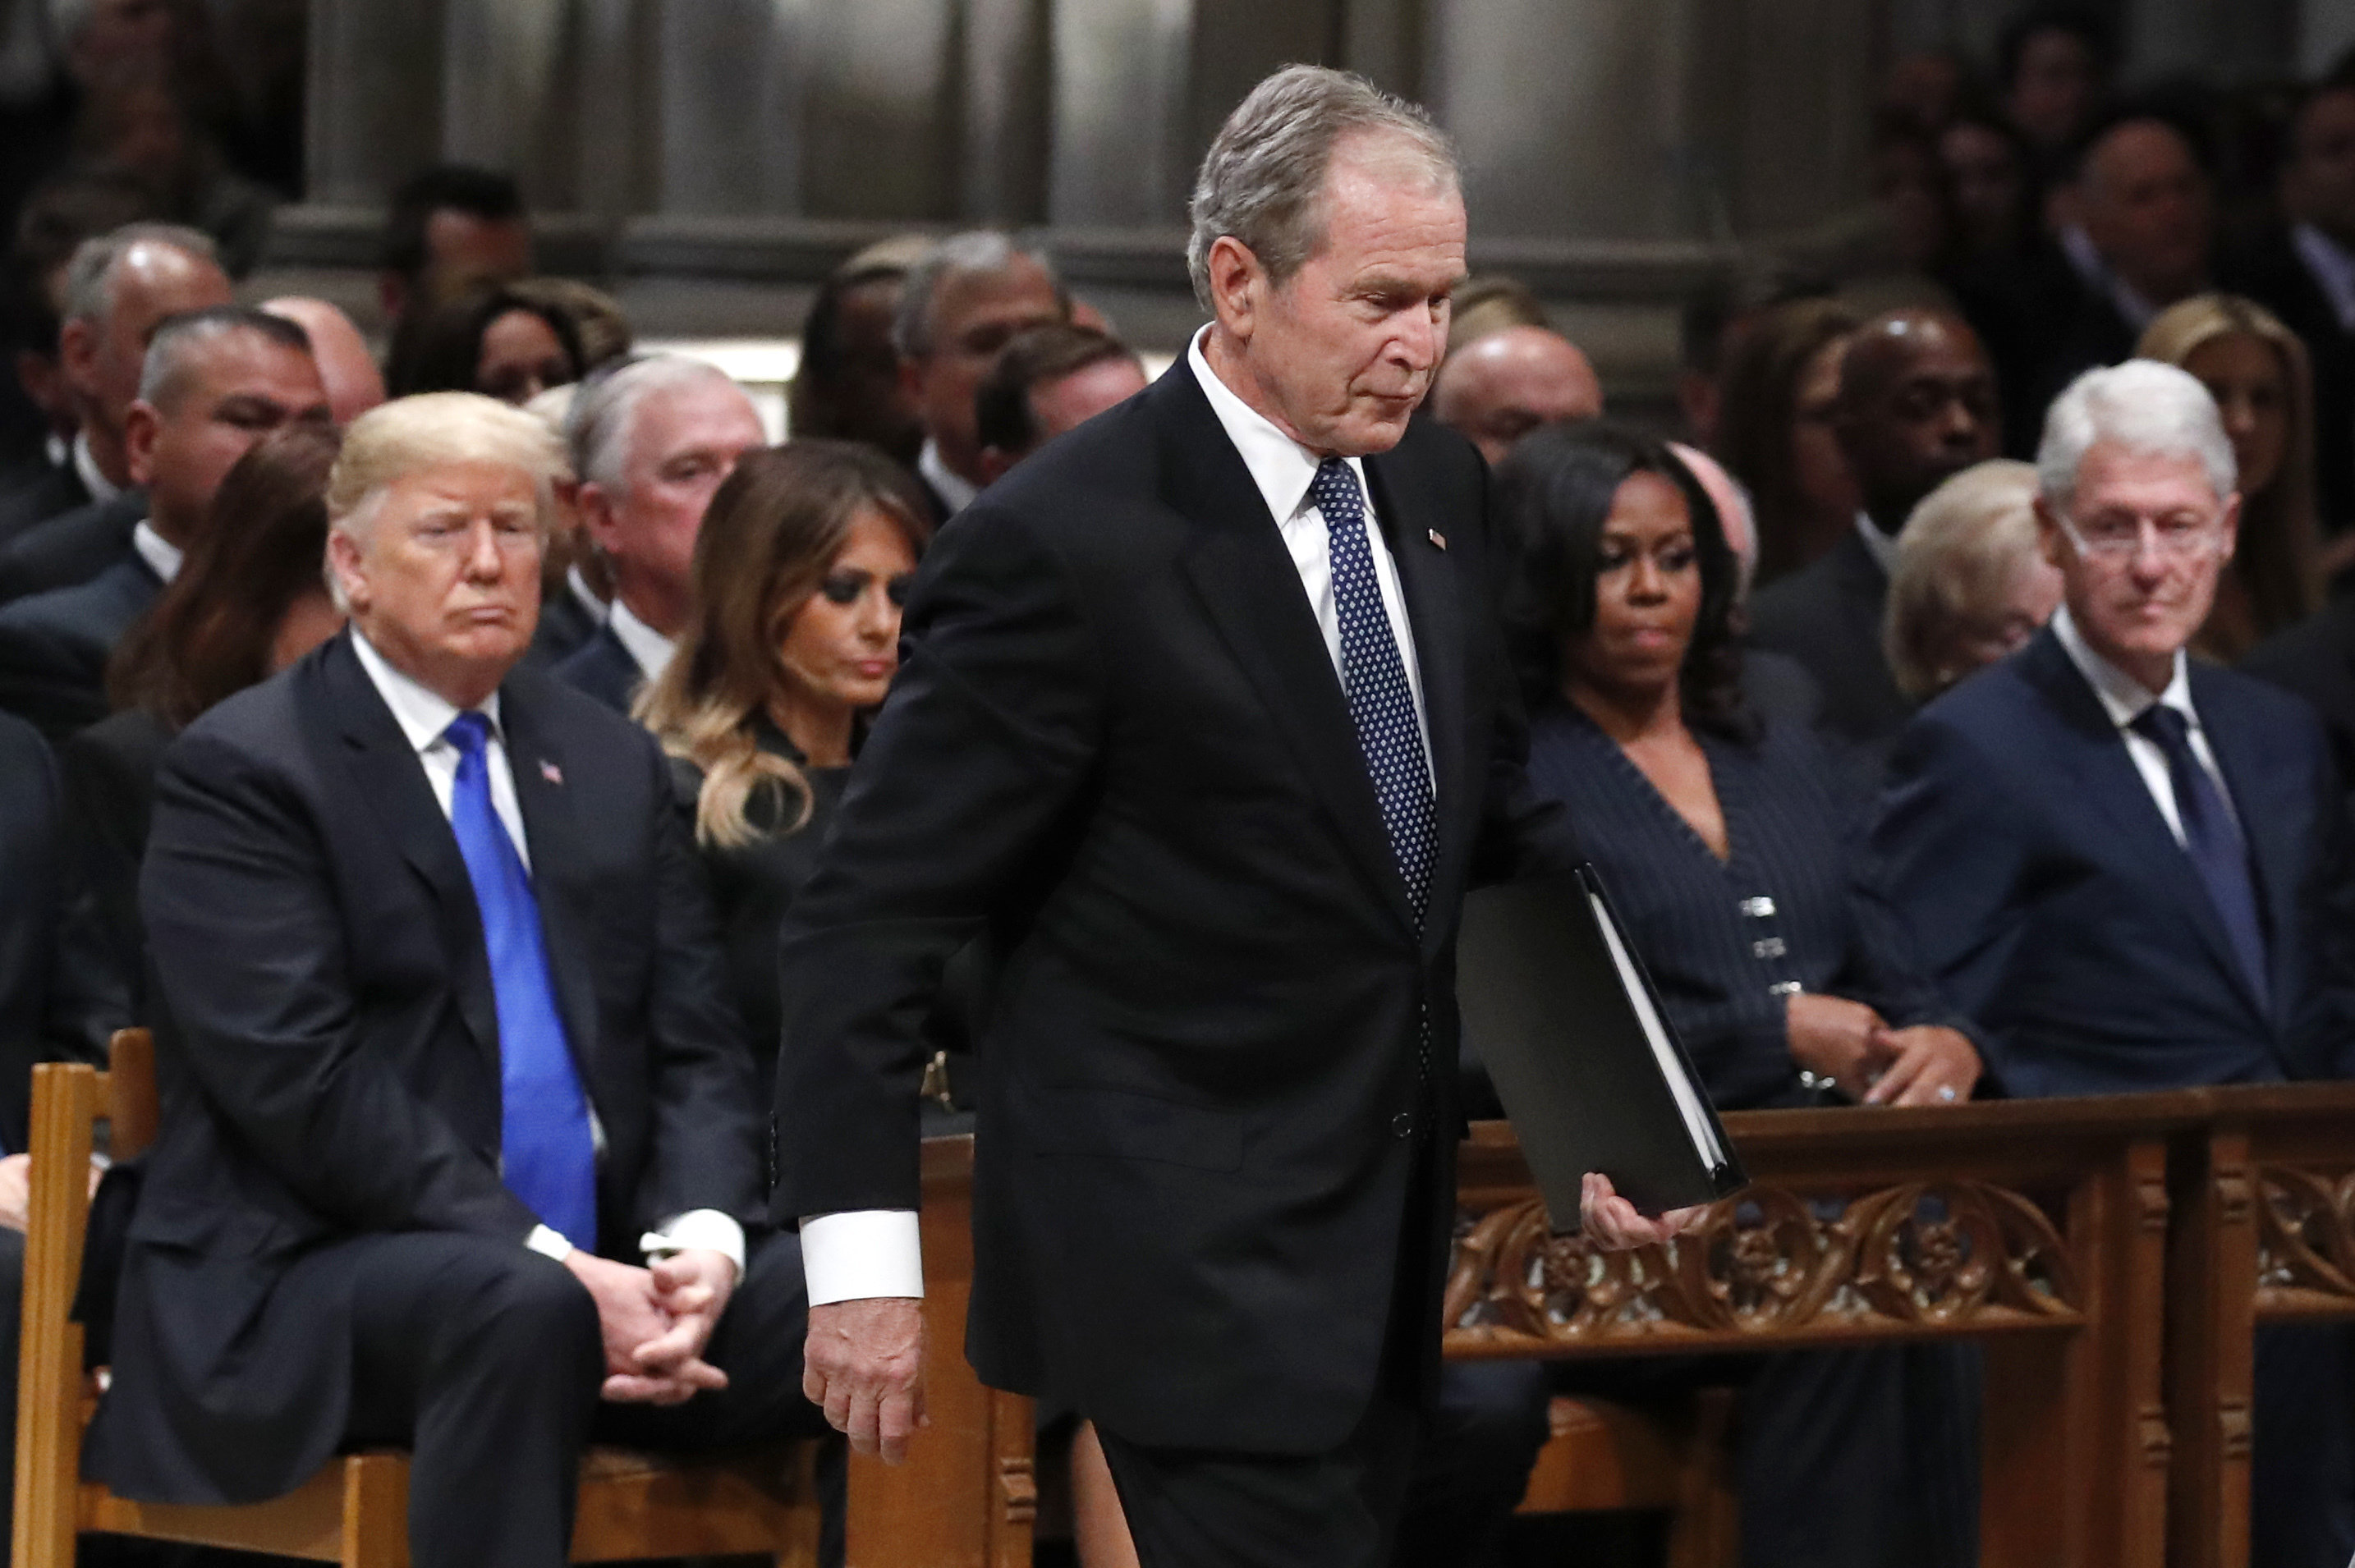 Former President George W. Bush walks past President Donald Trump, first lady Melania Trump, Michelle Obama and former President Bill Clinton to give a eulogy for his father